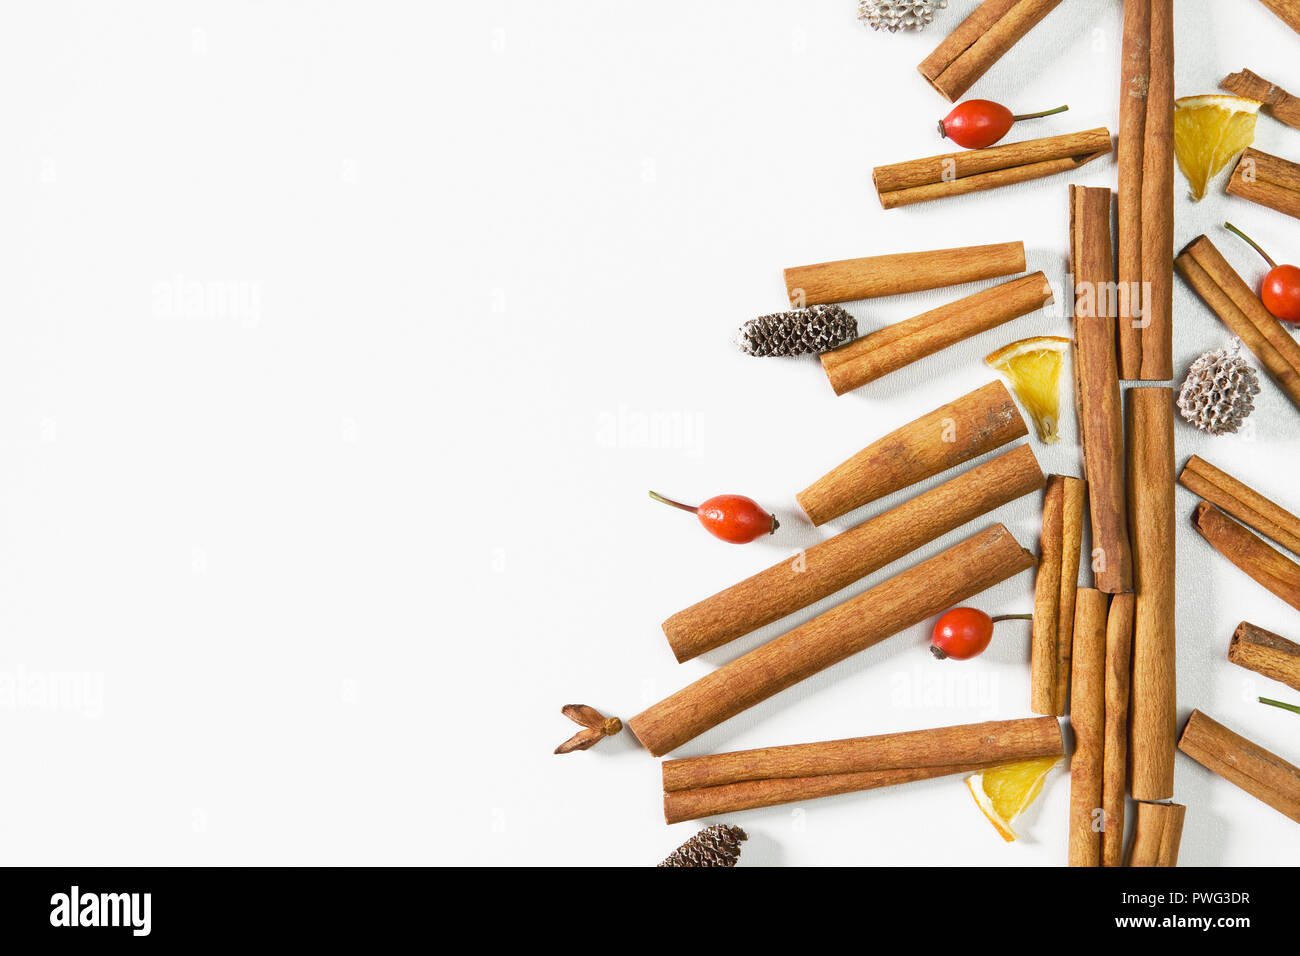 Christmas tree made of cinnamon sticks, cones, oranges and rosehip fruits. White background, flat lay, top view. - Stock Image